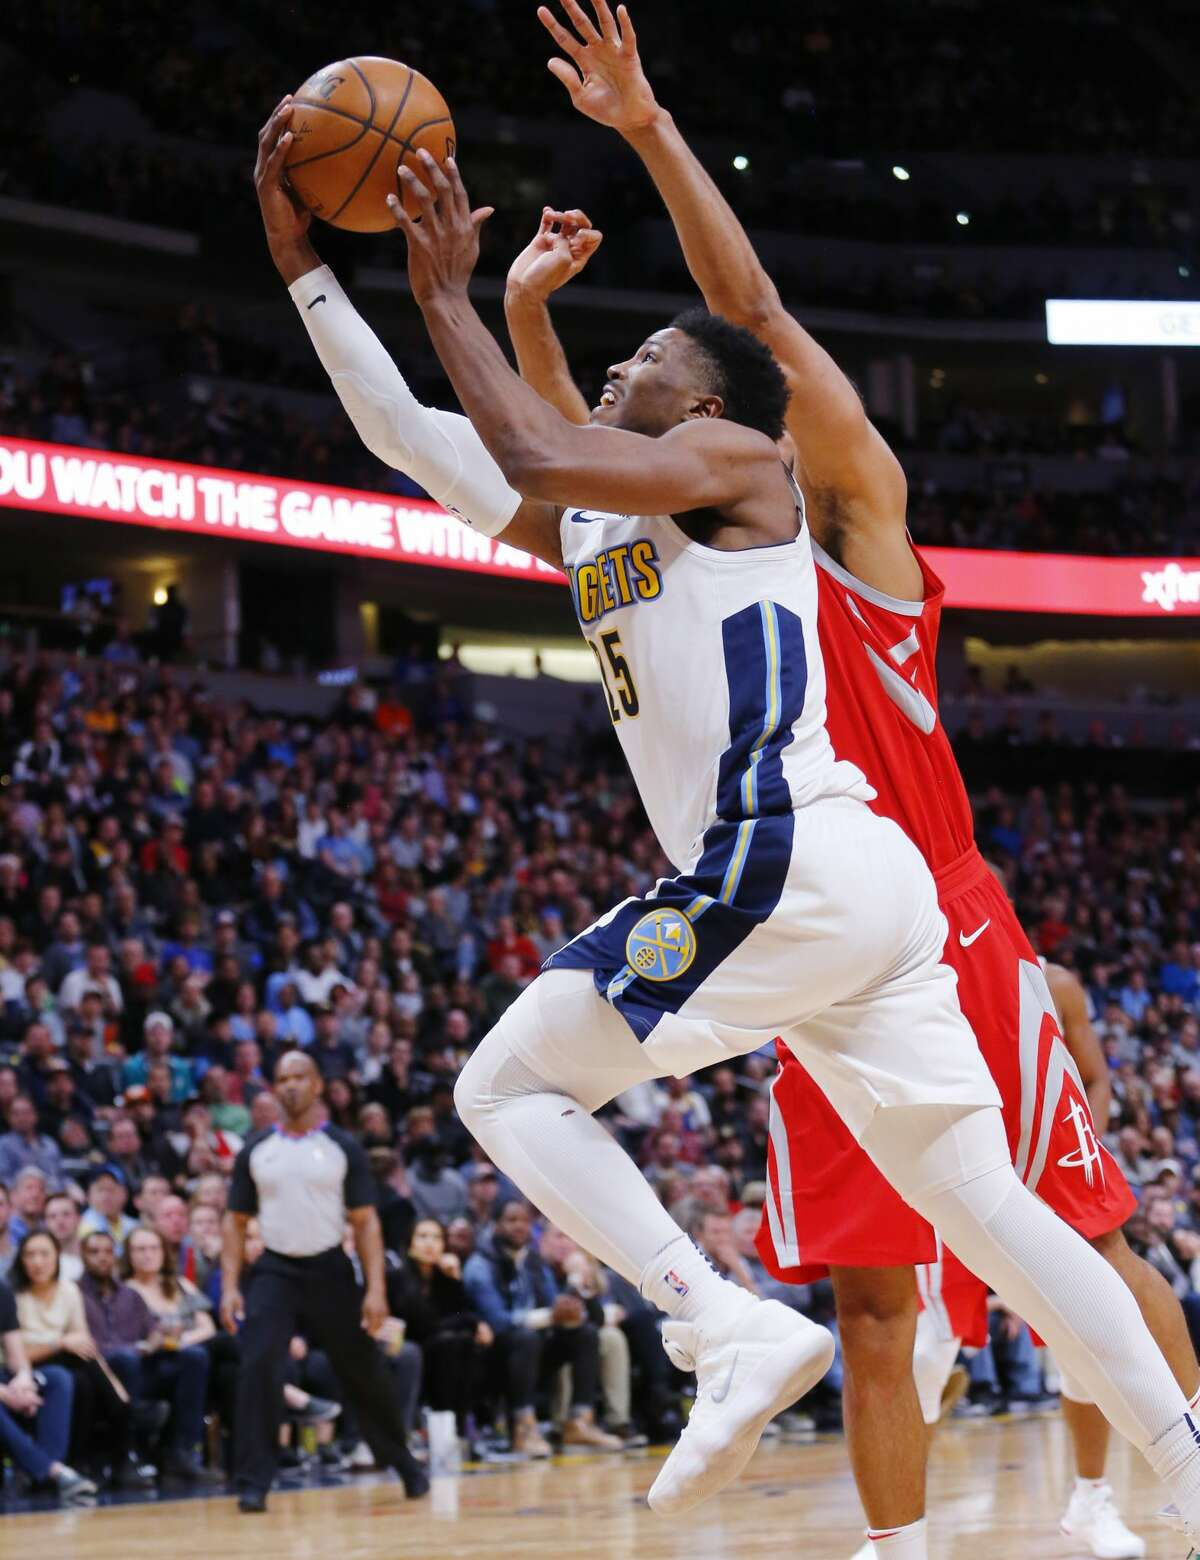 Denver Nuggets guard Malik Beasley (25) goes up for a shot against the against the Houston Rockets during the fourth quarter of an NBA basketball game, Sunday, Feb. 25, 2018, in Denver. (AP Photo/Jack Dempsey)